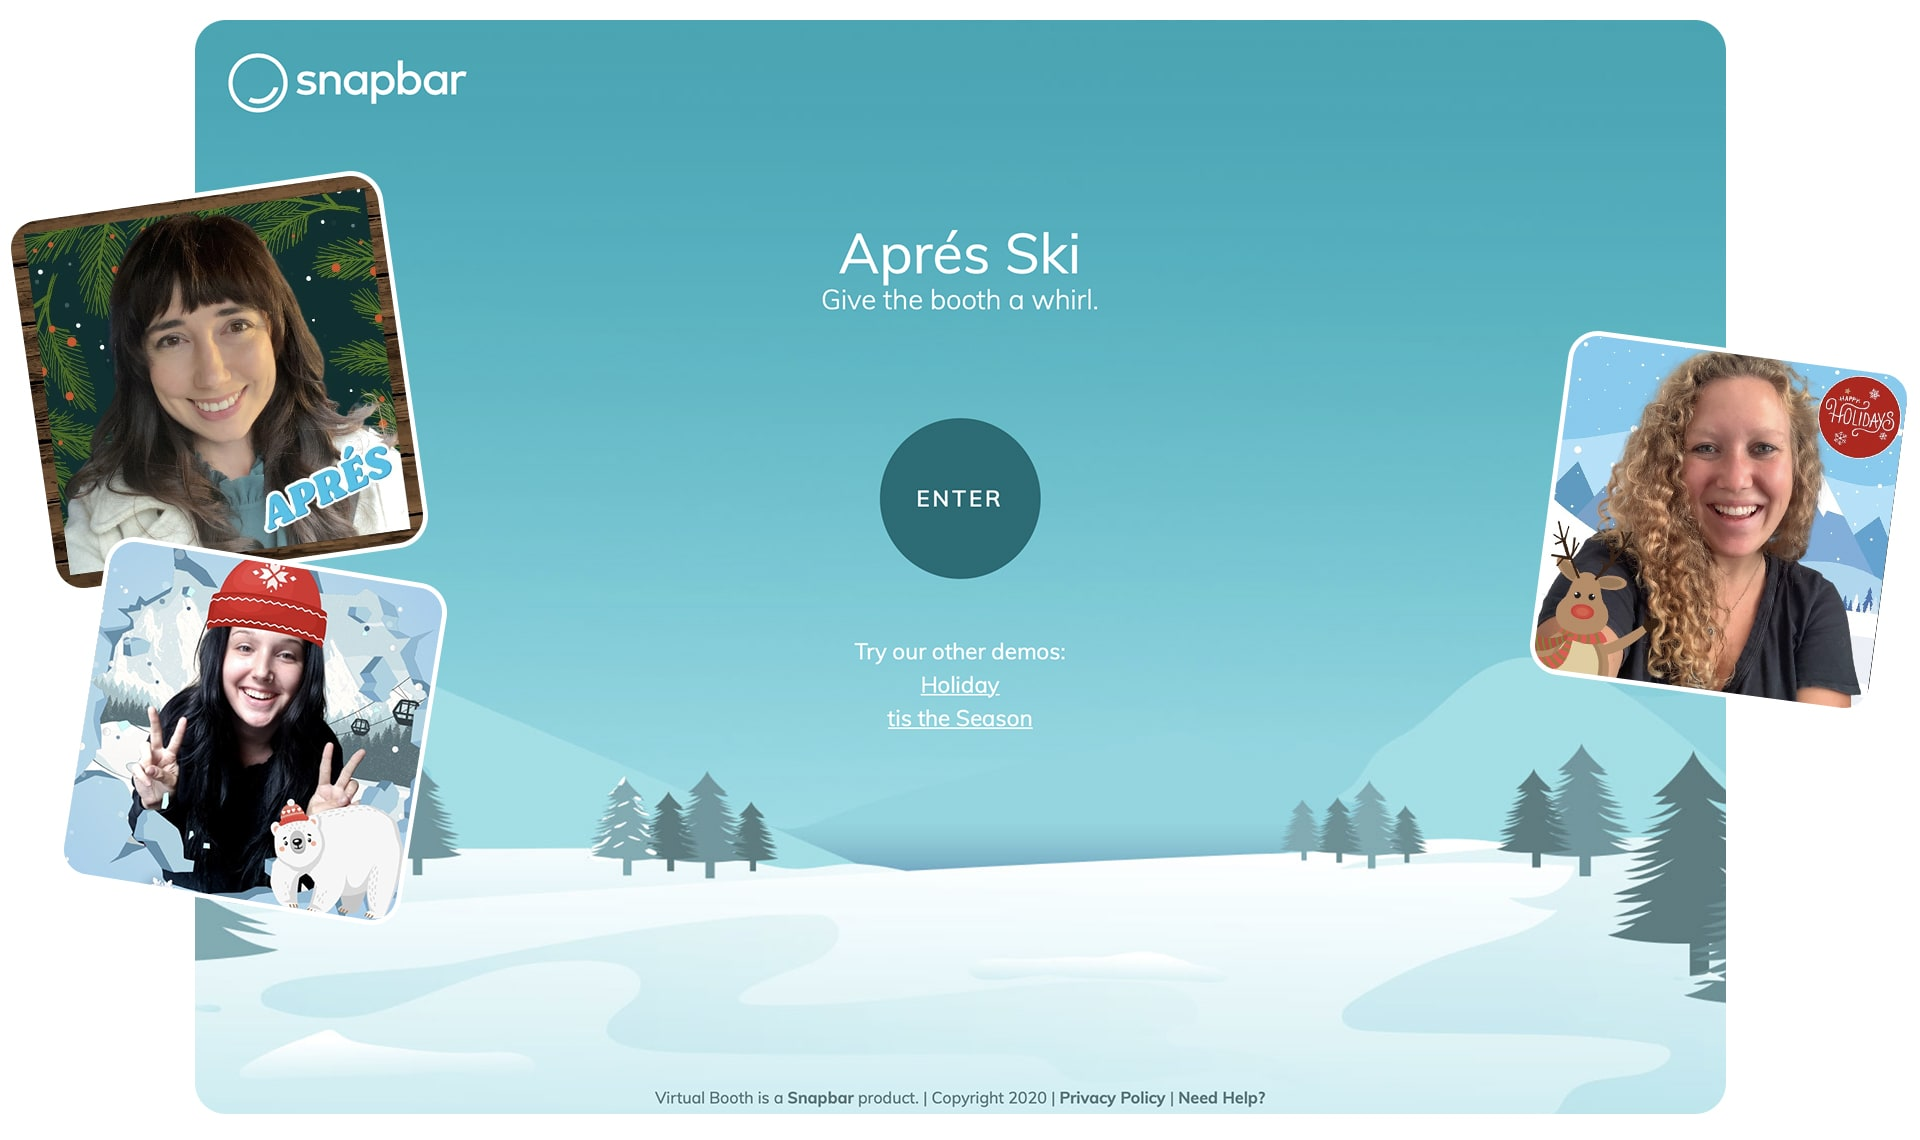 Apres ski virtual booth demo